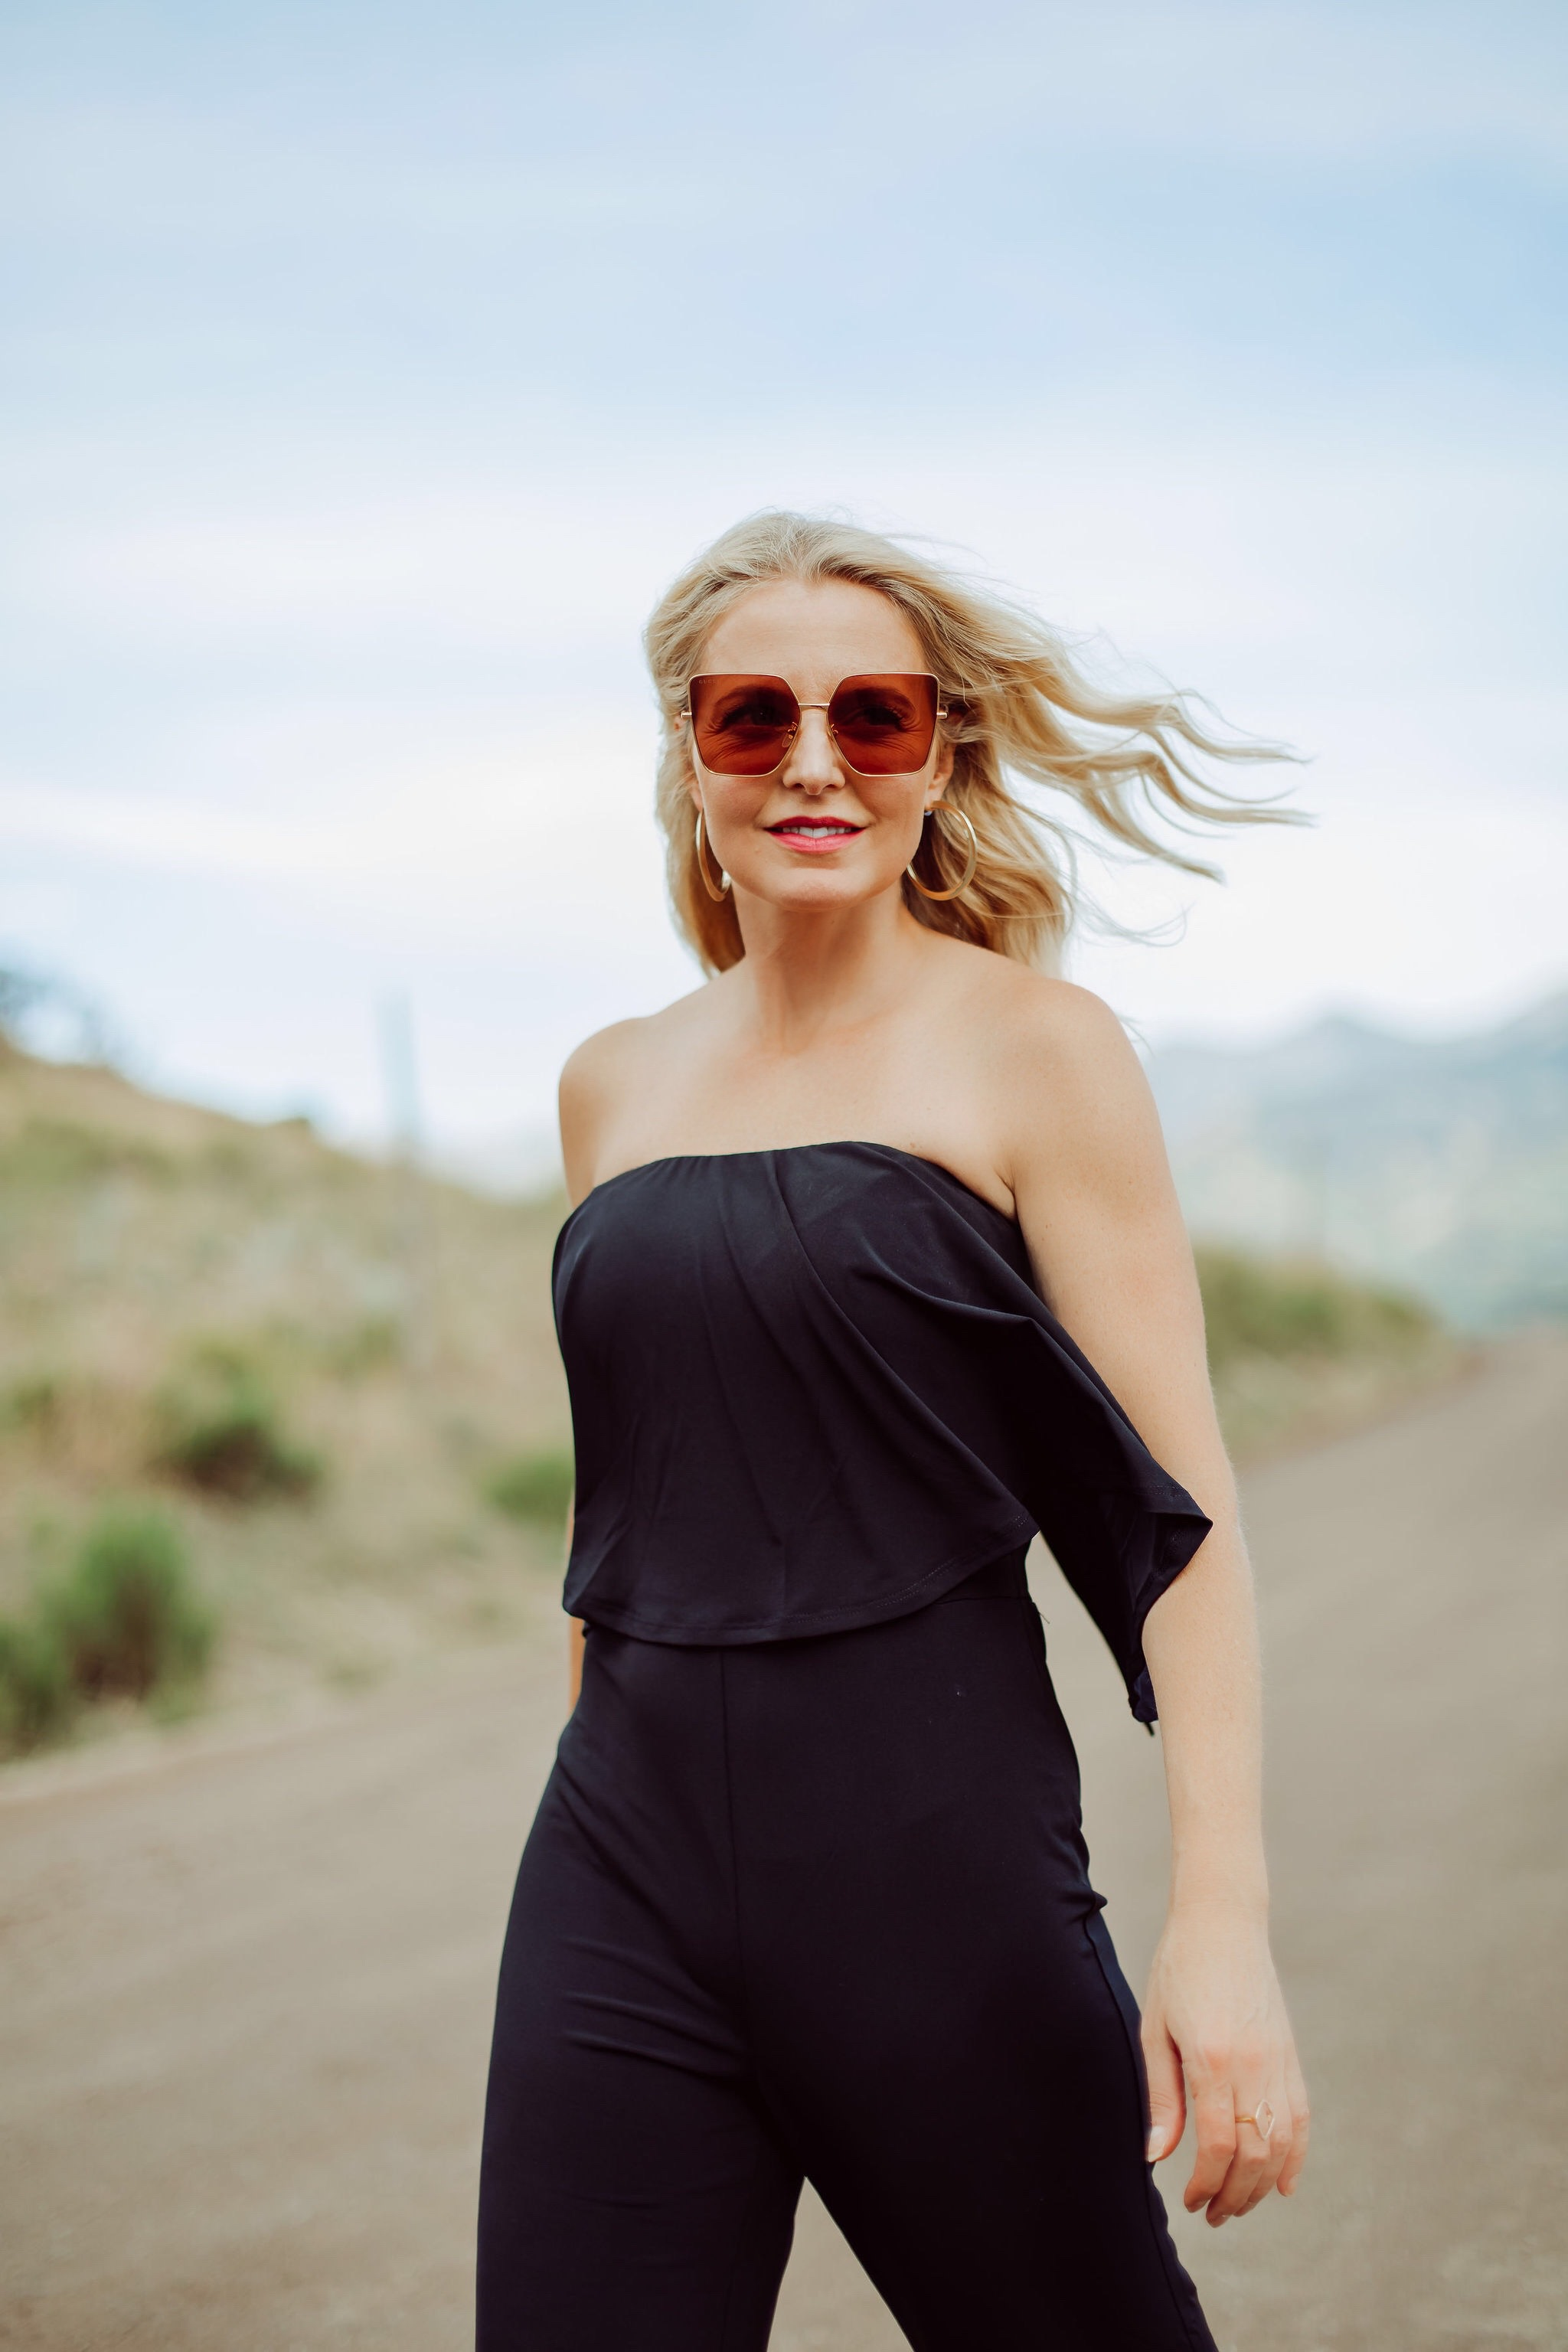 Jumpsuits Over 40, Fashion Blogger Erin Busbee of Busbee Style wearing a black flared jumpsuit by Scoop with flounce top and black strappy block heel sandals by Scoop from Walmart in Telluride, Colorado